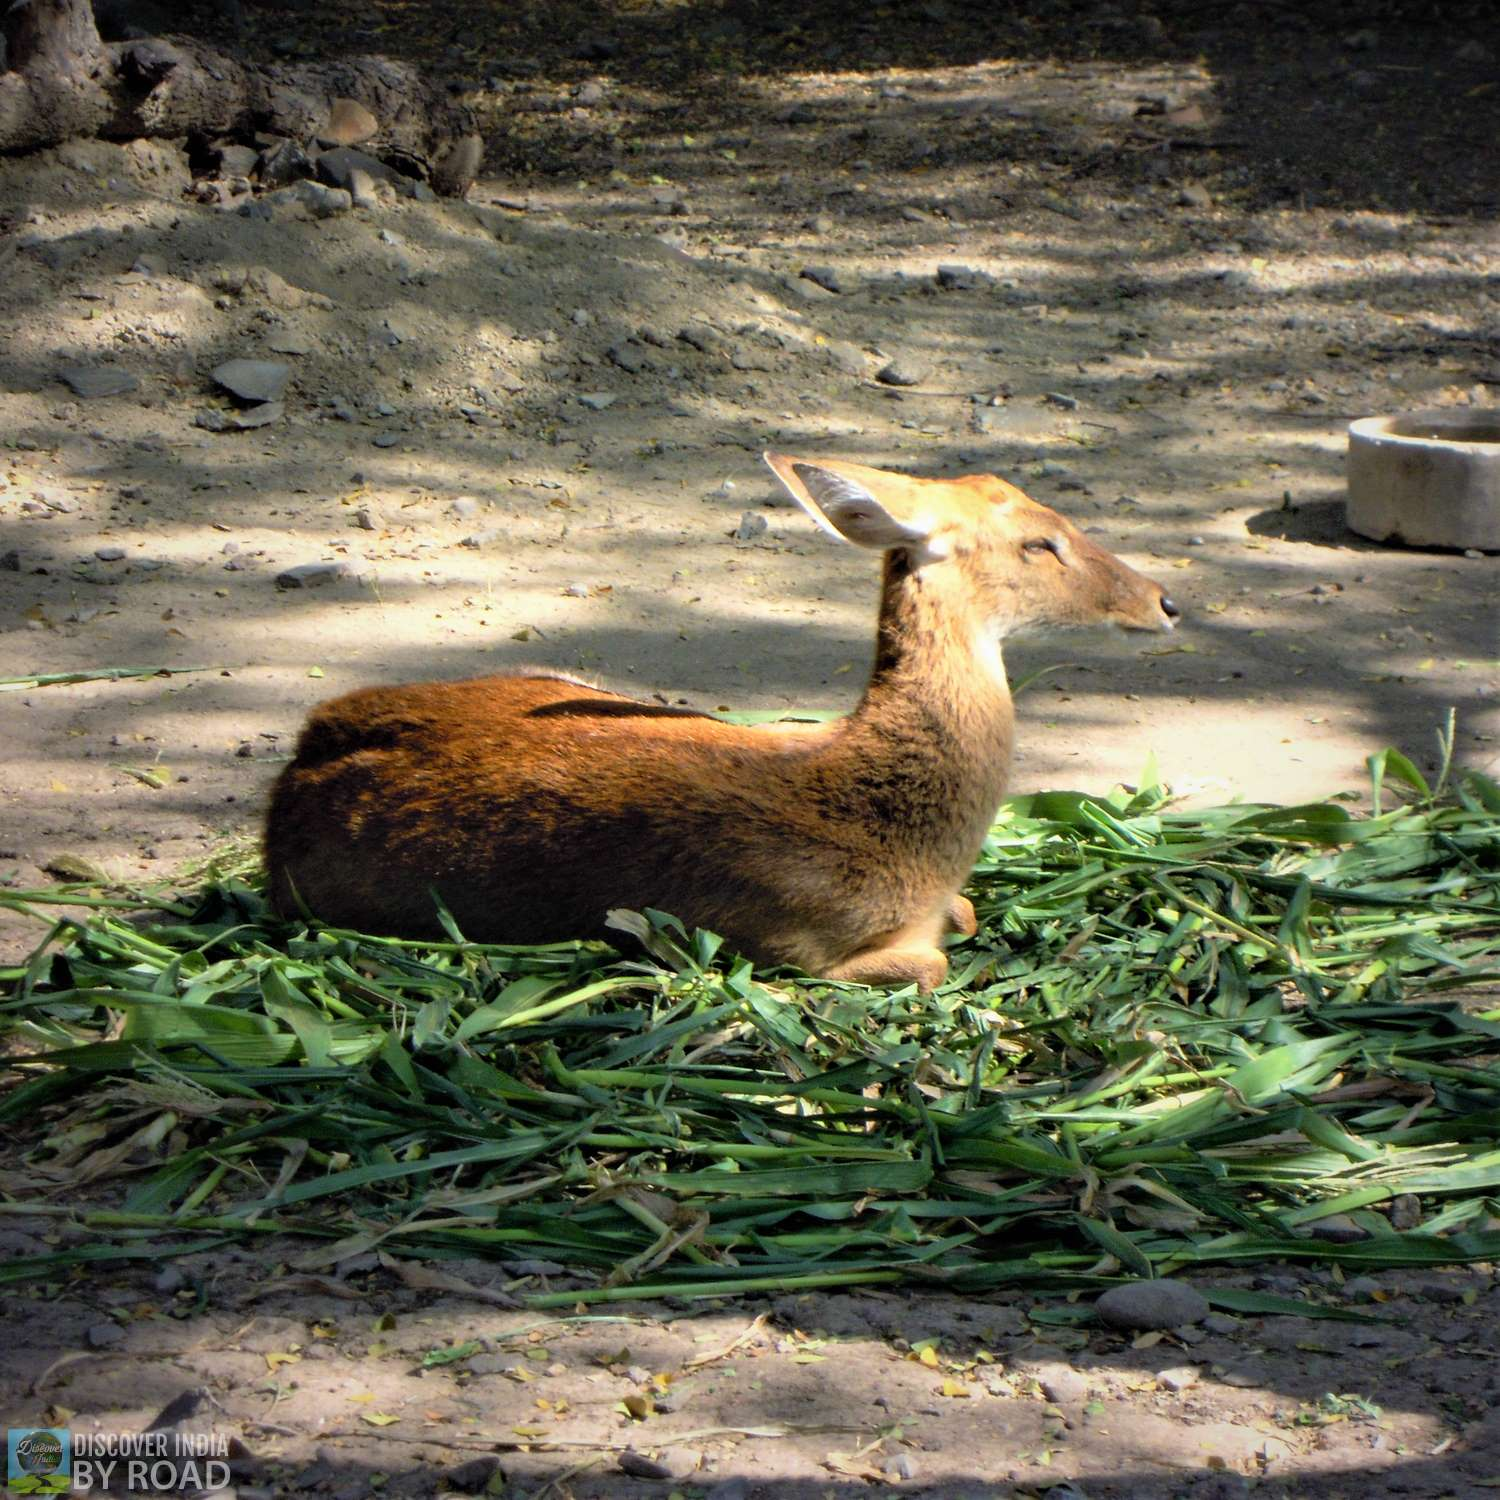 Resting Deer in sunlight at Sakkarbaug Zoo, Junagadh